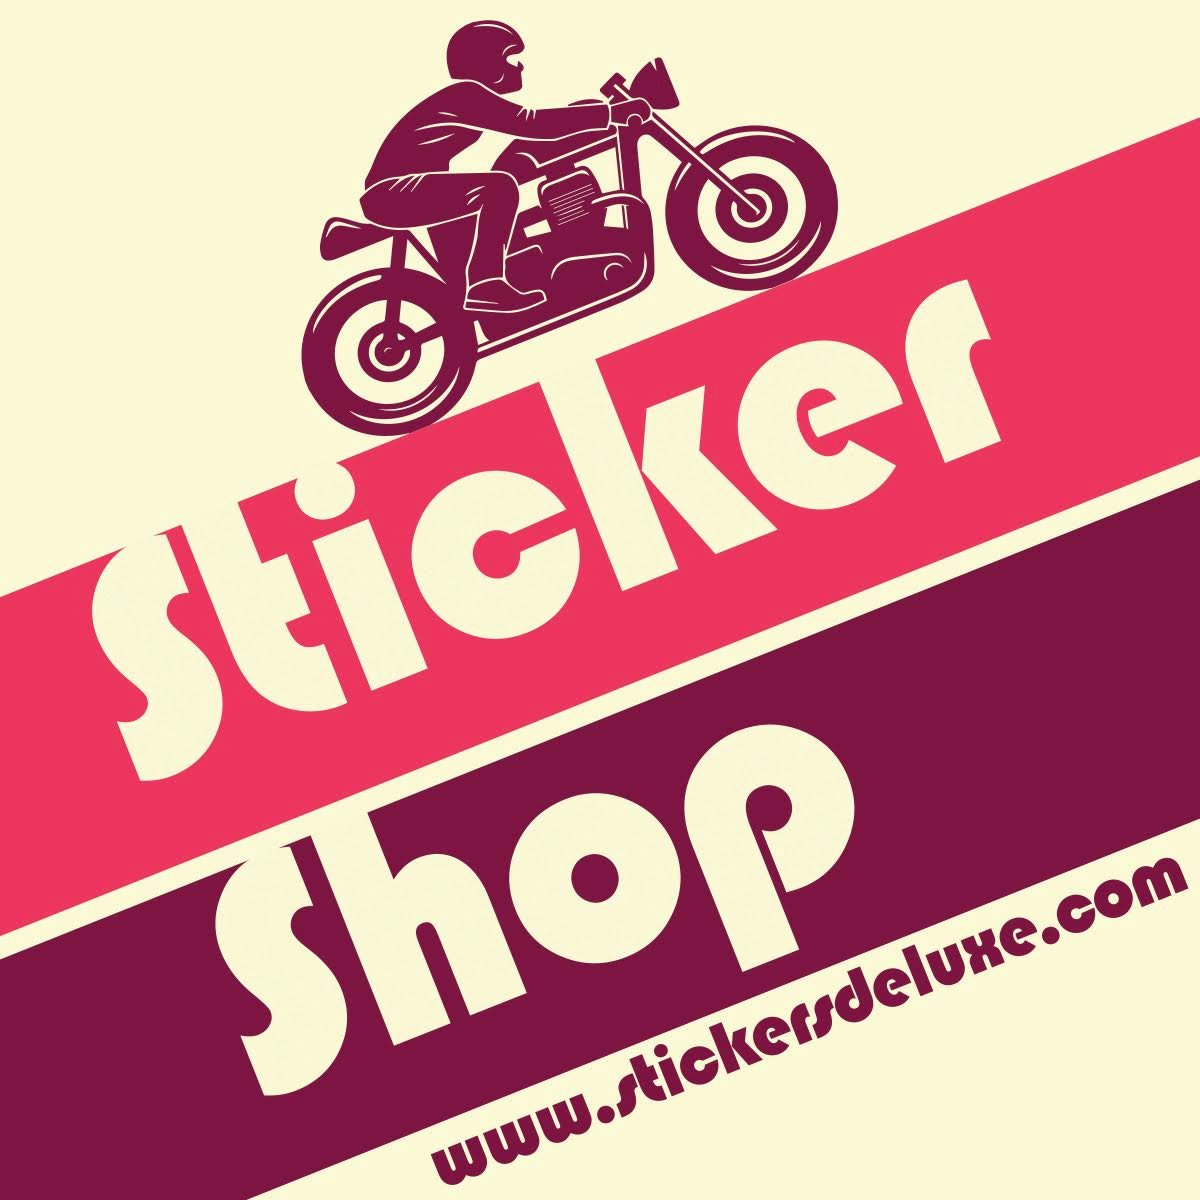 Stickers Deluxe Stickers & apparel, finest quality.